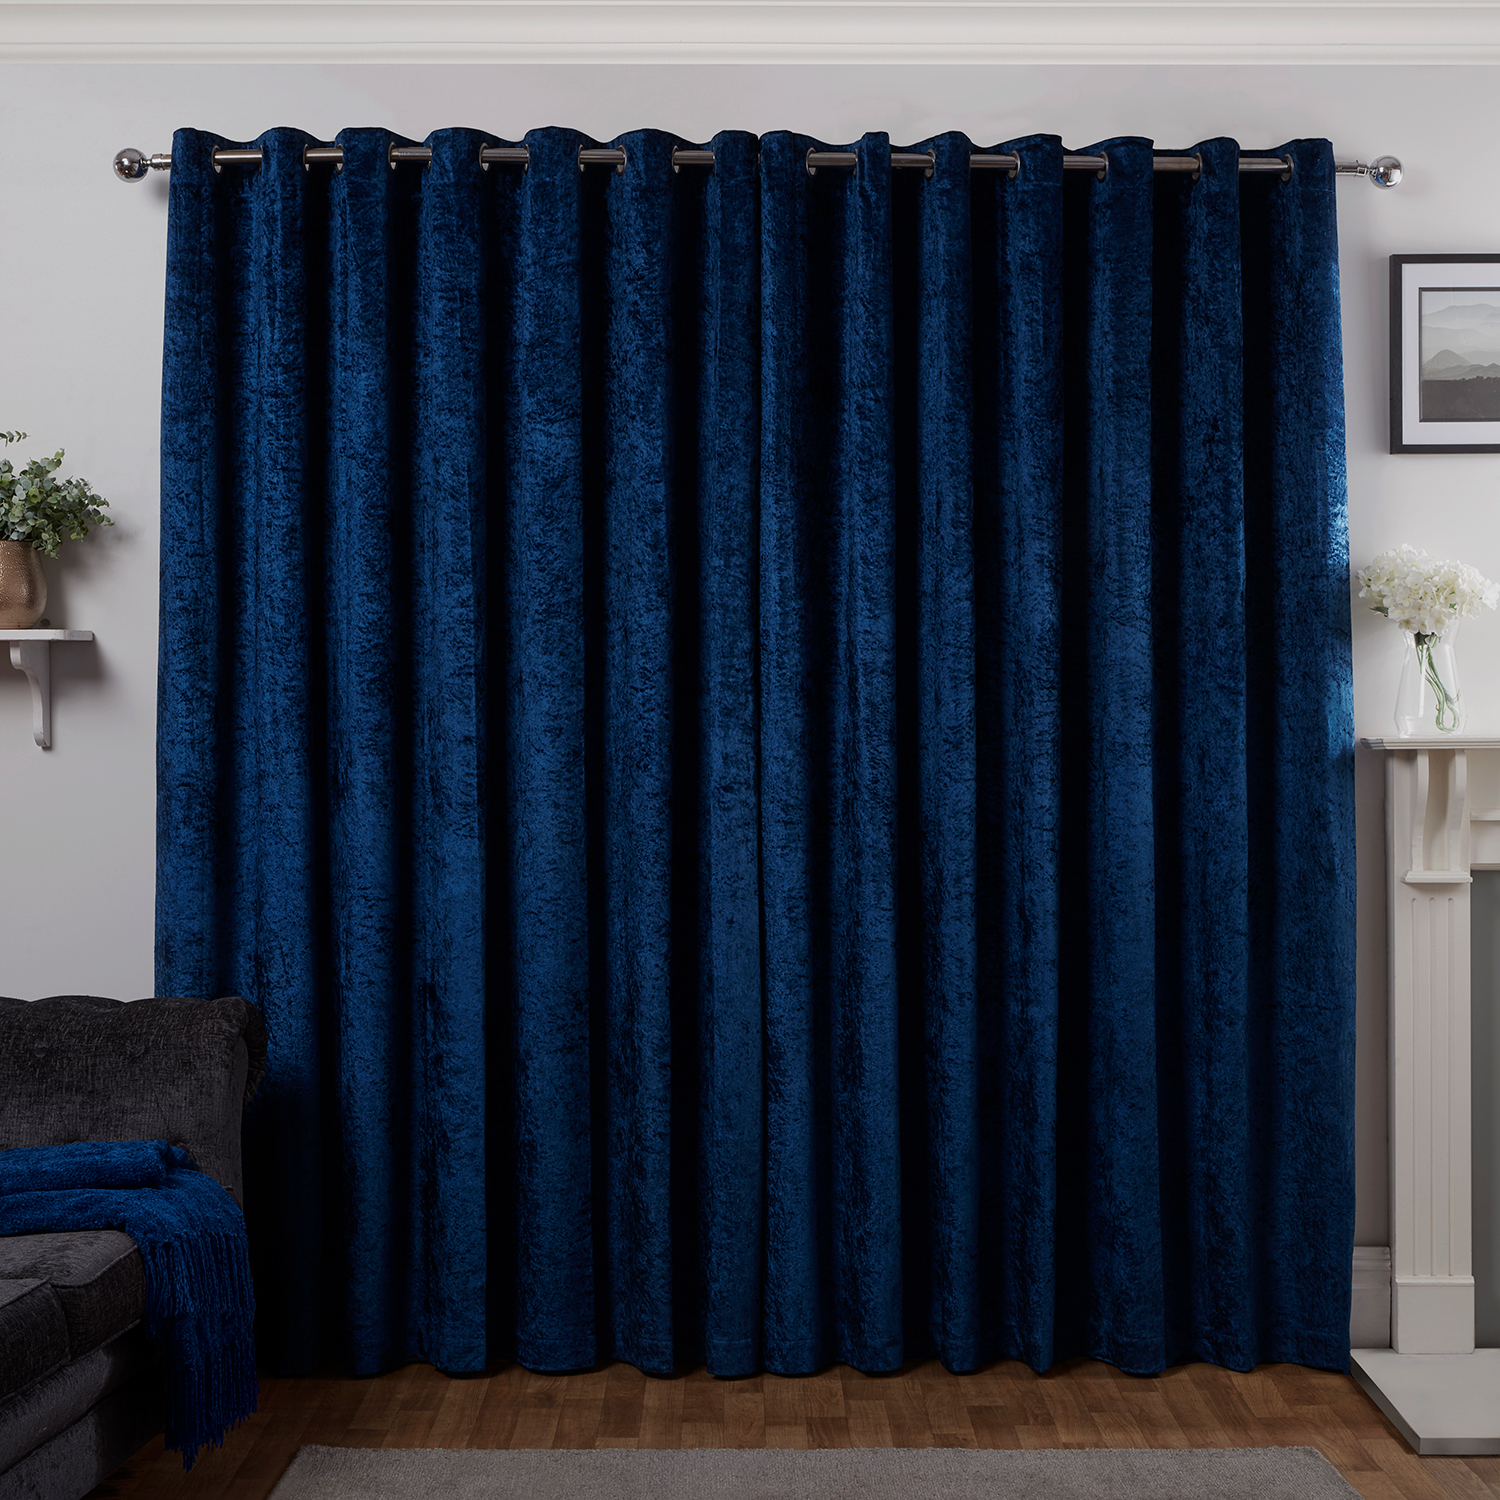 Blackout Thermal Crushed Velvet Curtain Home Store More